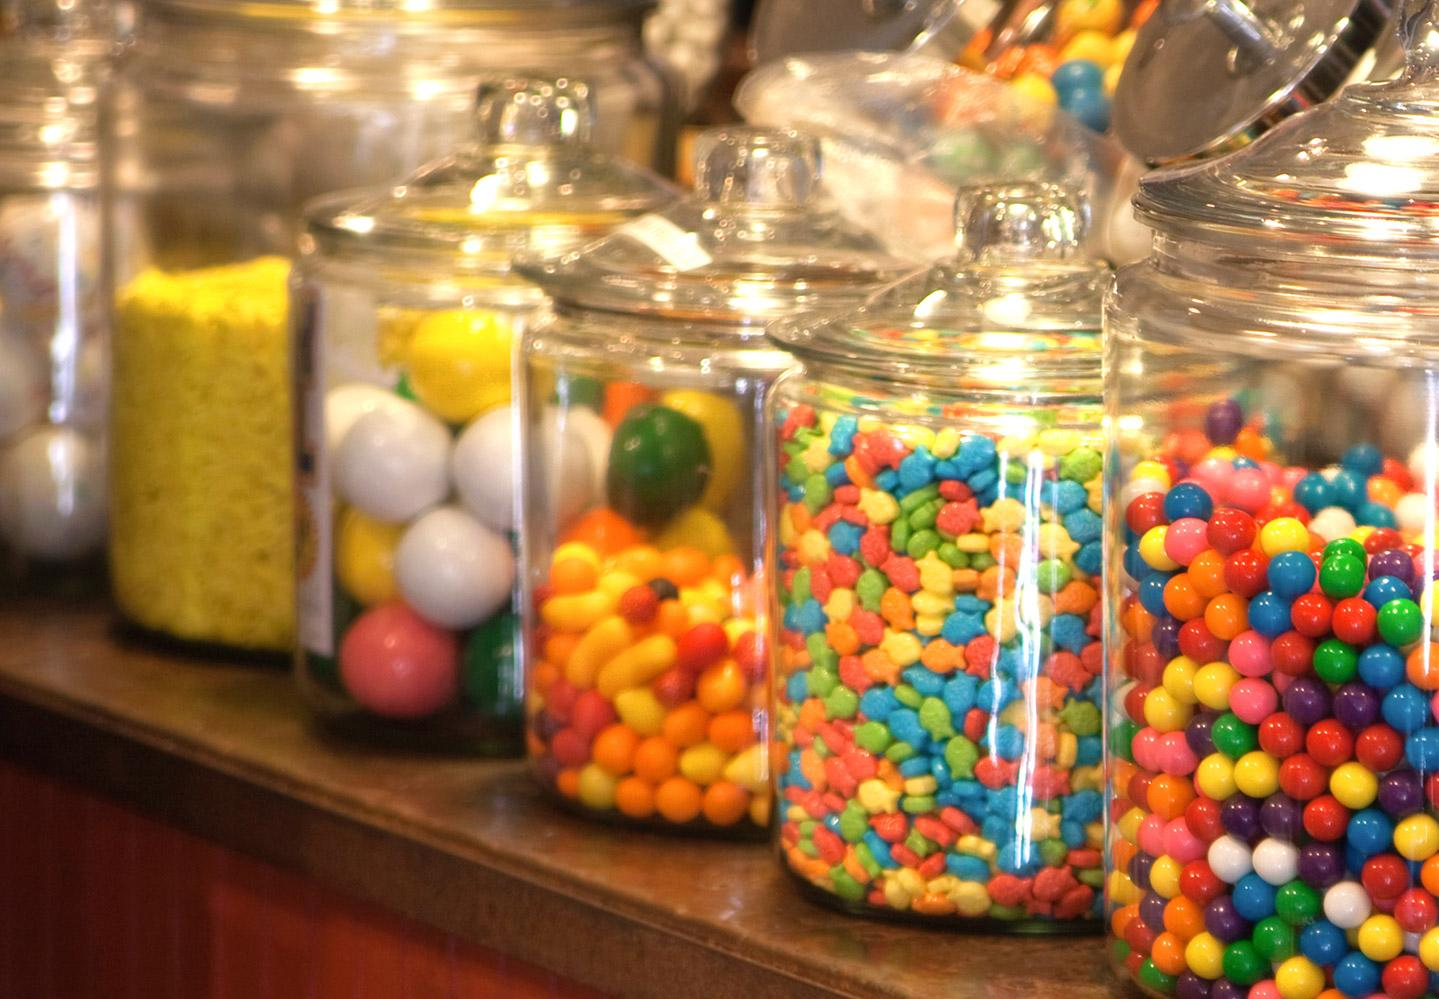 Sweets in the Jar